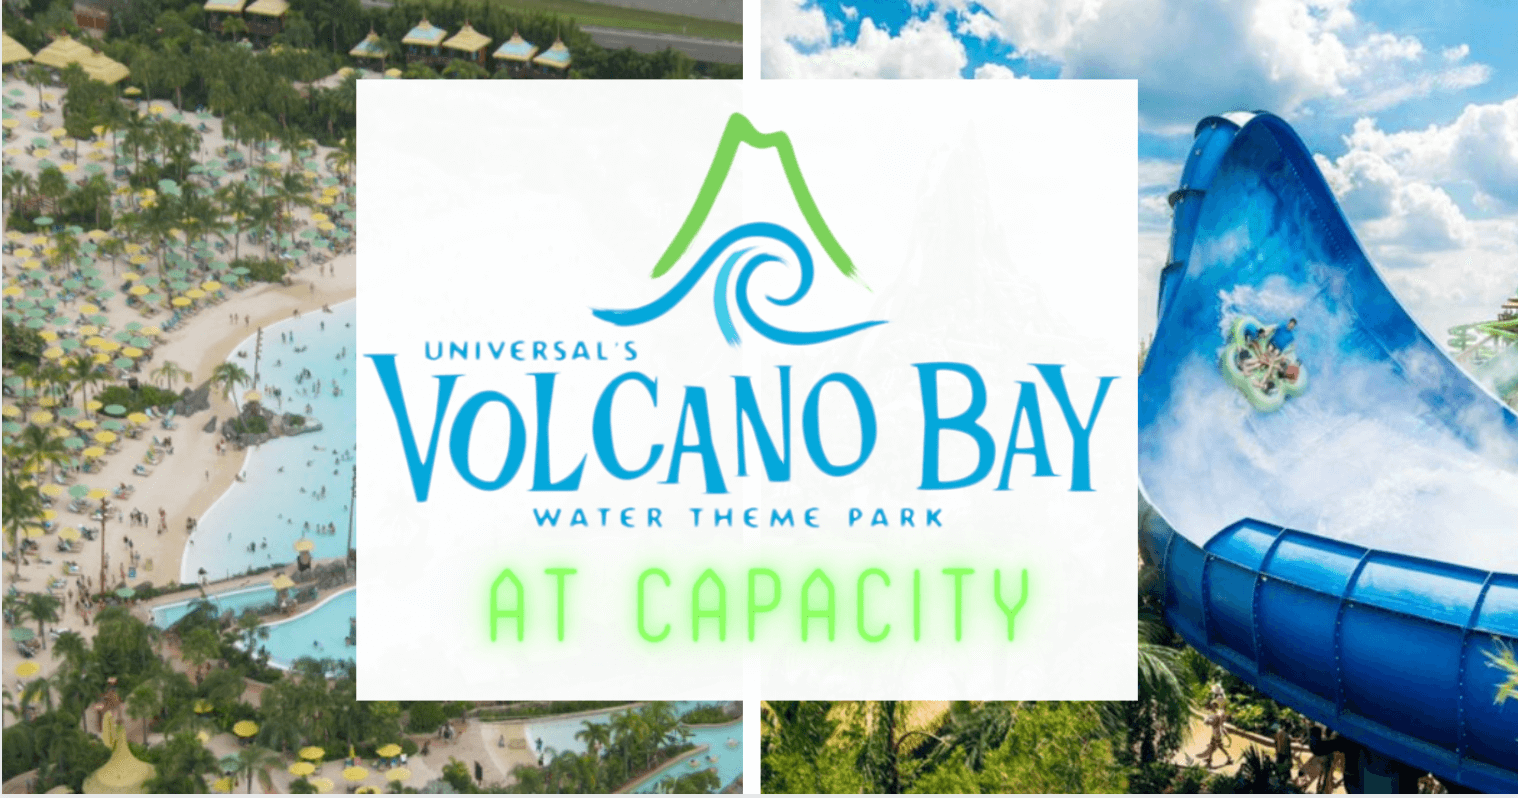 Universal S Volcano Bay Reaches Capacity No Masks Required Inside The Magic In 2020 Volcano Bay Water Theme Park Orlando Theme Parks